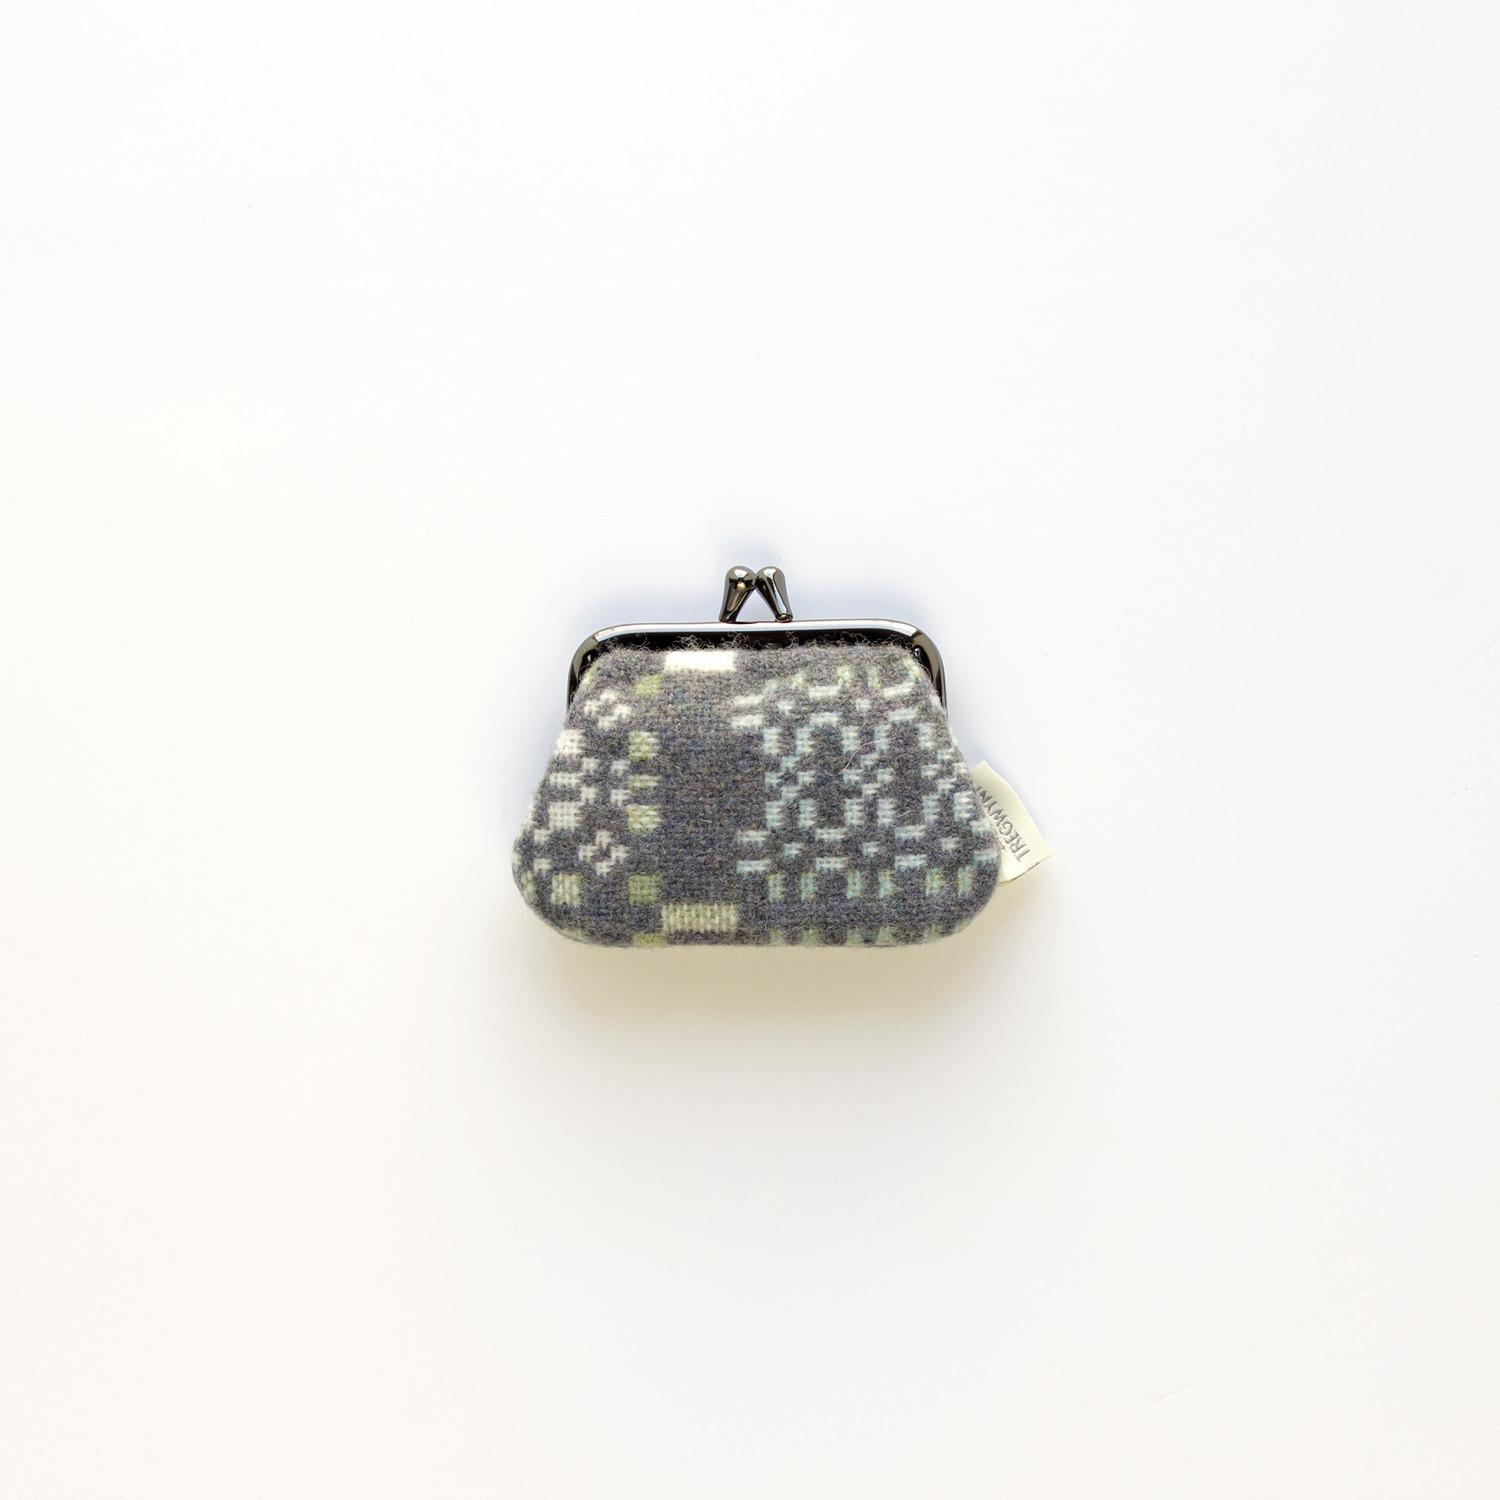 Knot garden bluestone small purse